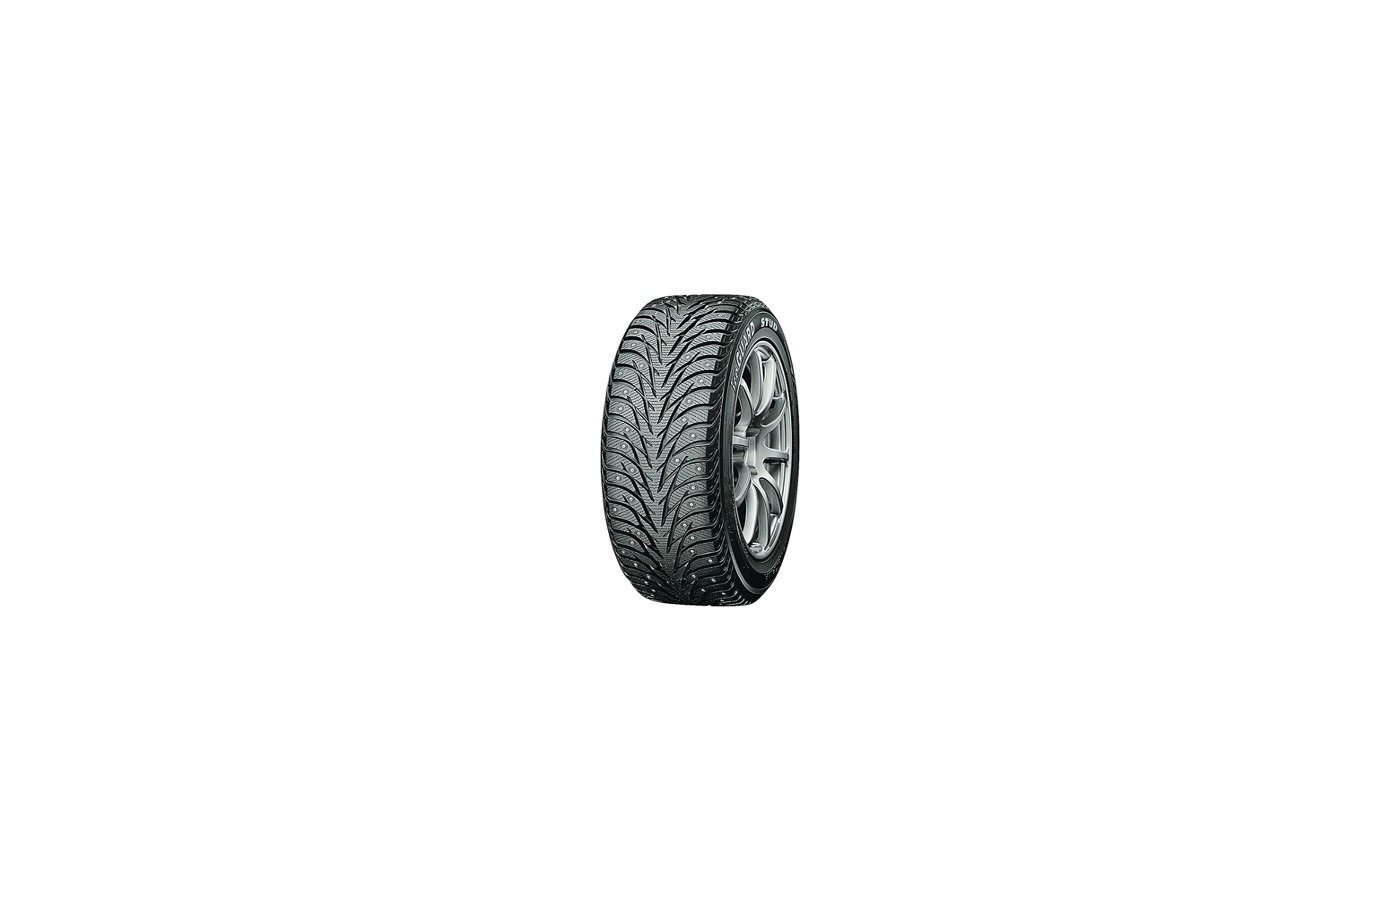 Шина Yokohama Ice Guard IG35 Plus 285/60 R18 TL 116T шип